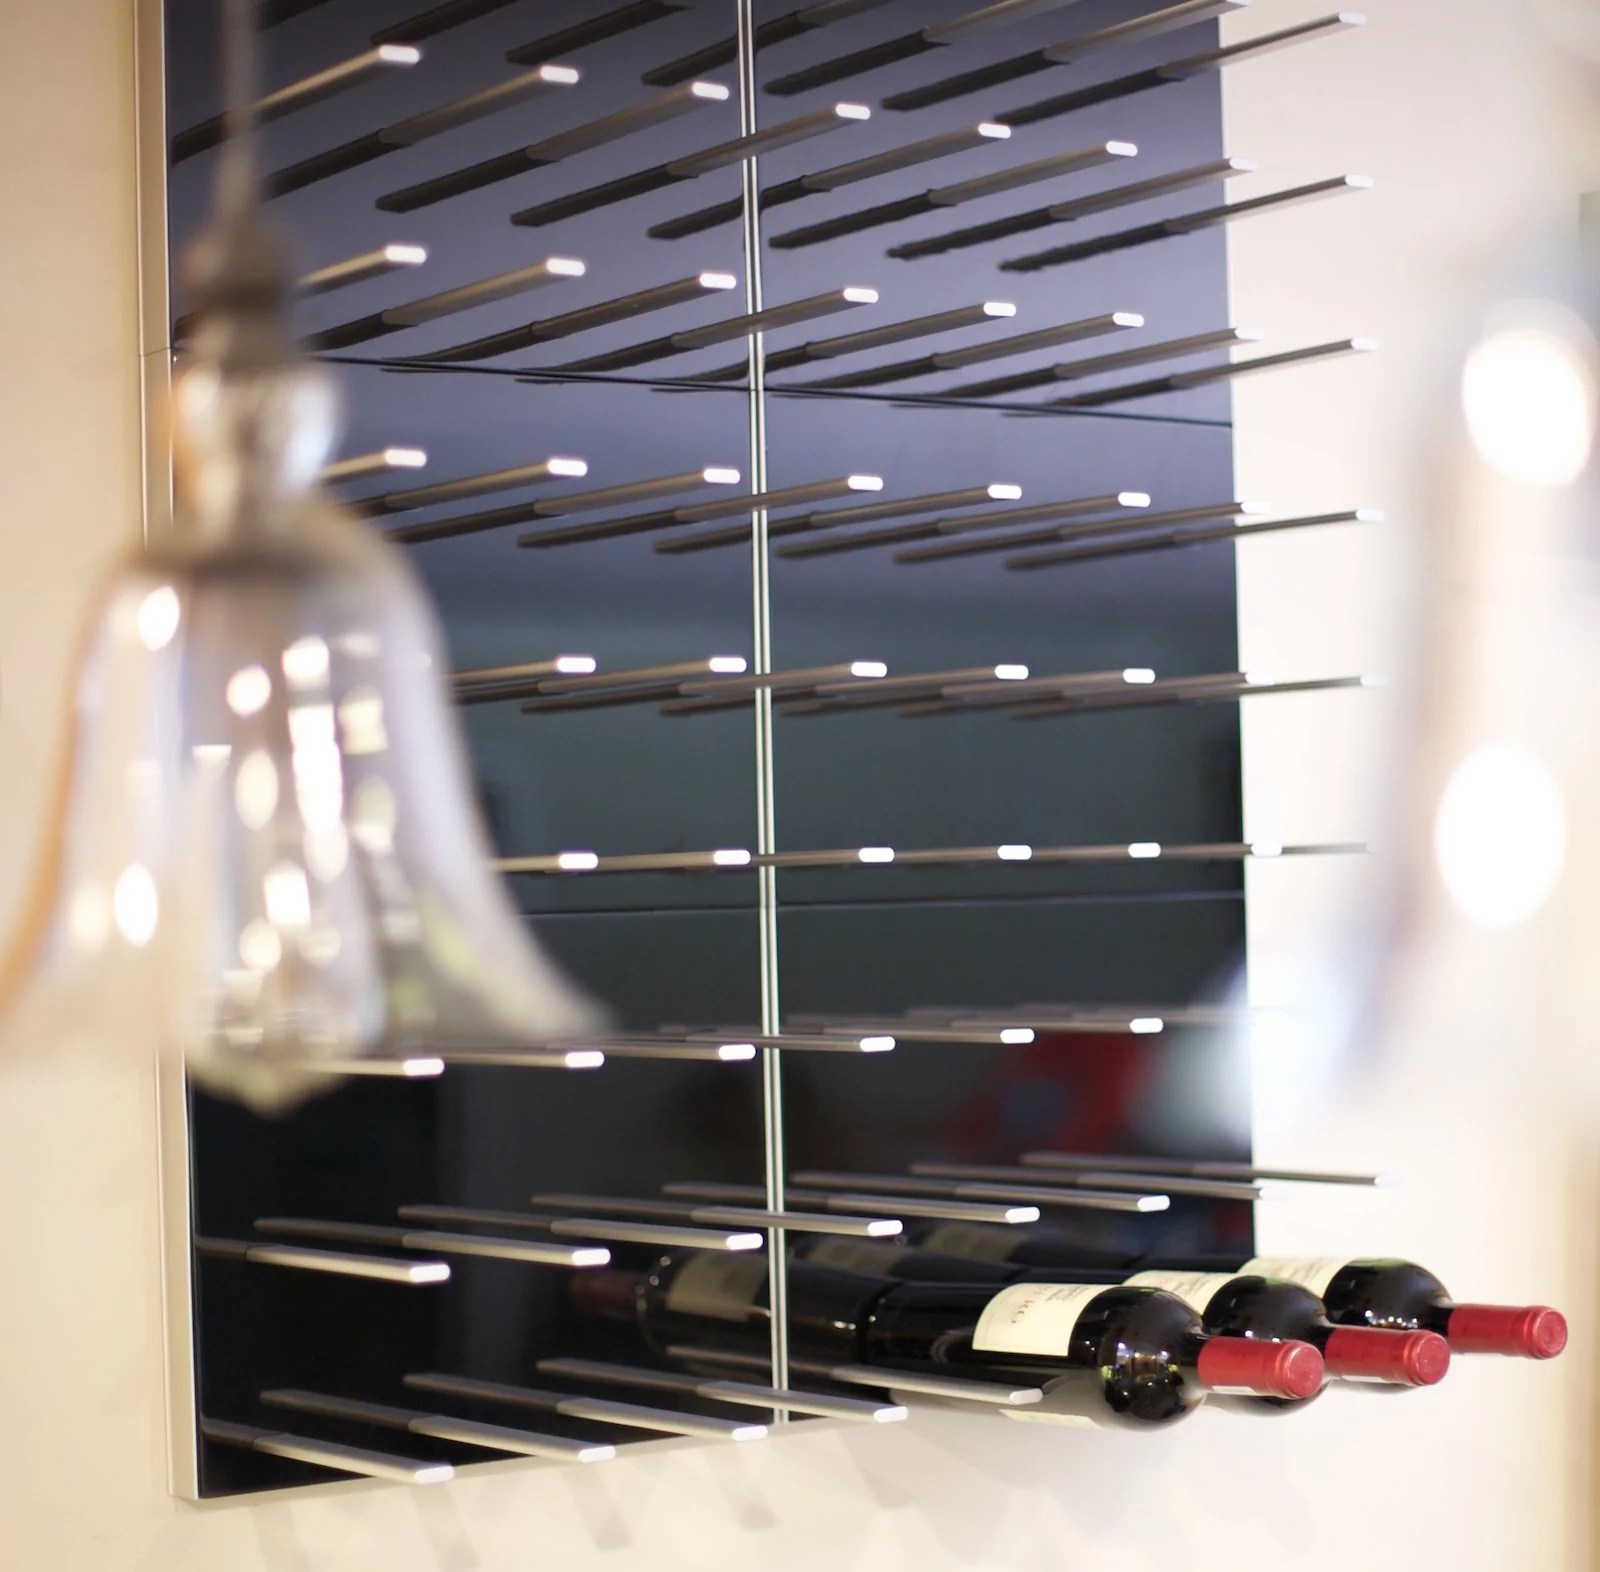 Wine Rack Built Into Wall Wine Storage And Display Trends For 2018 Stact Wine Racks